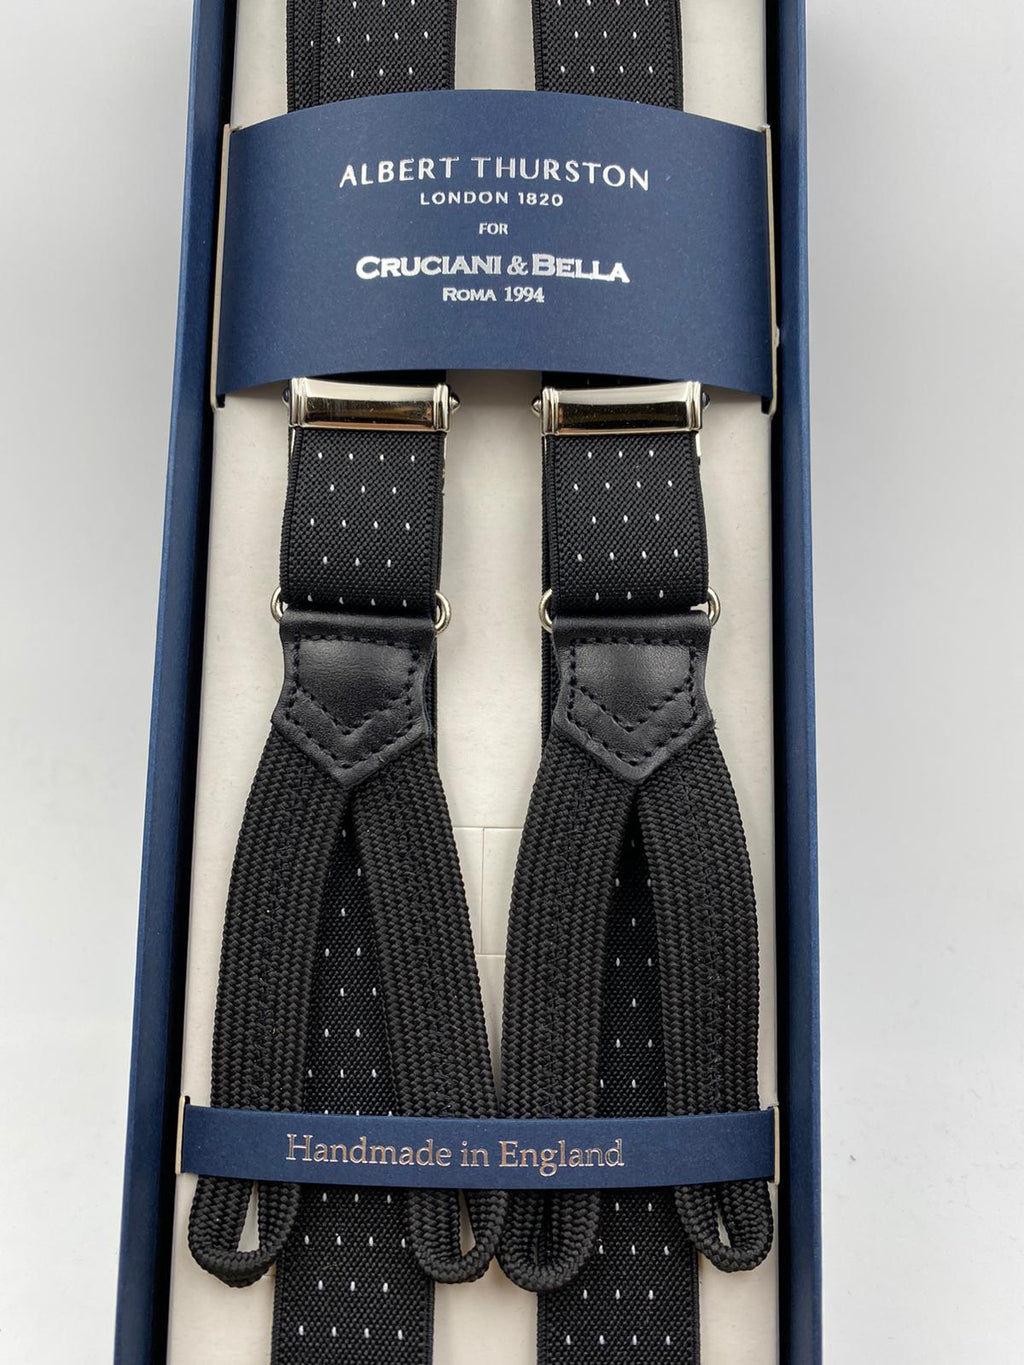 Albert Thurston for Cruciani & Bella Made in England Adjustable Sizing 25 mm elastic braces Black  and White Dot Braid ends Y-Shaped Nickel Fittings Size: L #4925